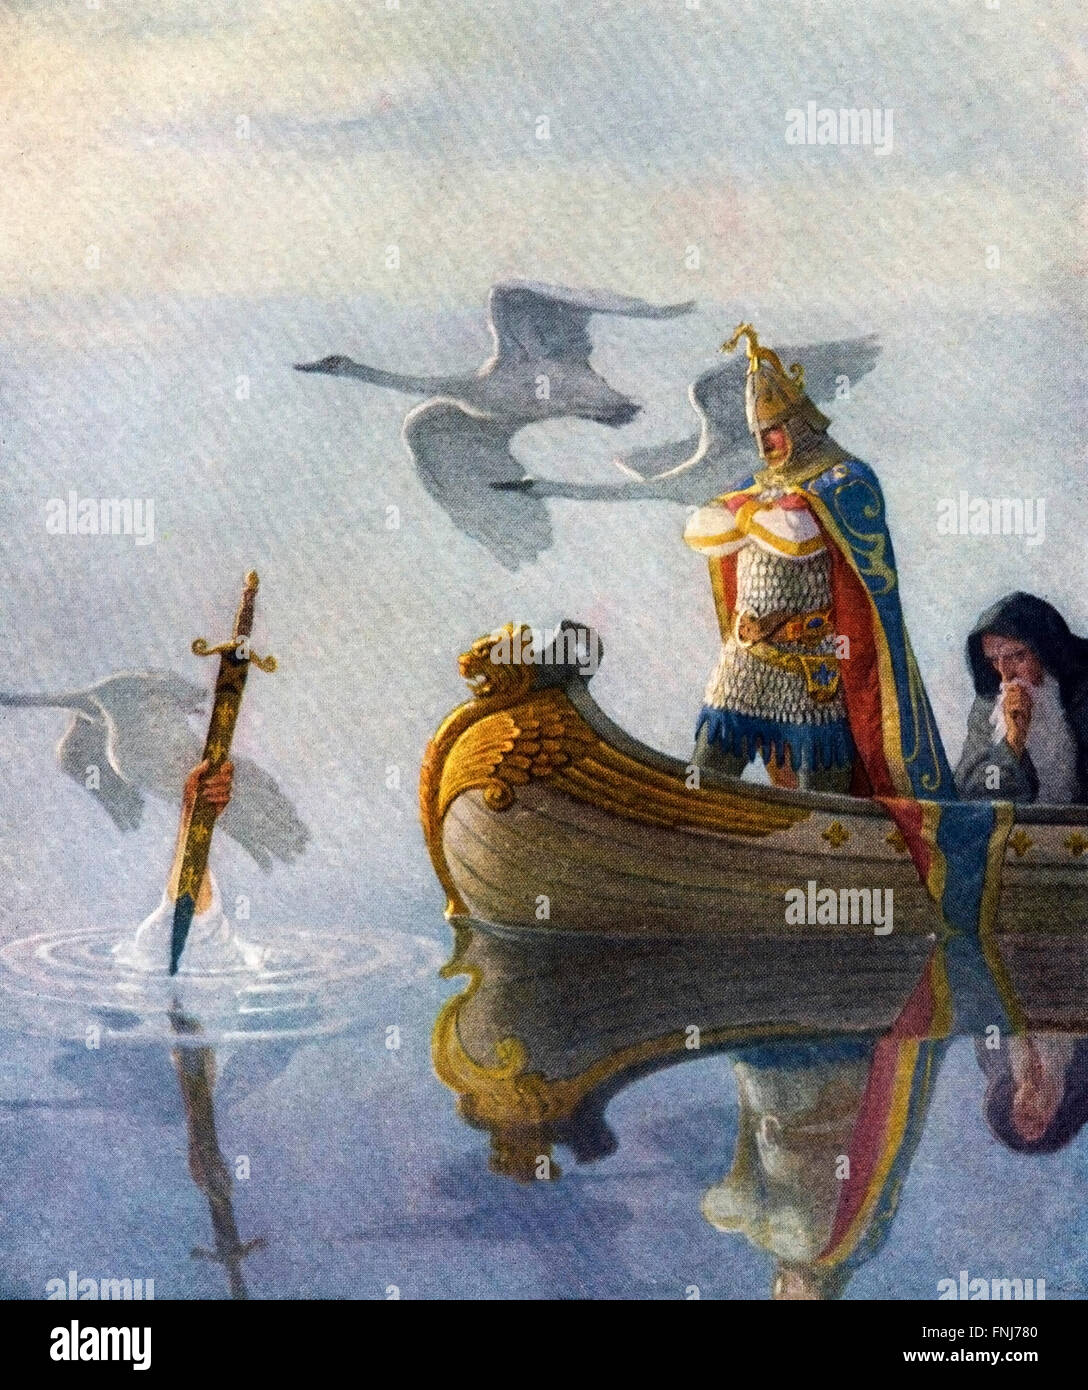 King Arthur and a hand holding the sword Excalibur. An illustration from 'The Boy's King Arthur: Sir Thomas - Stock Image